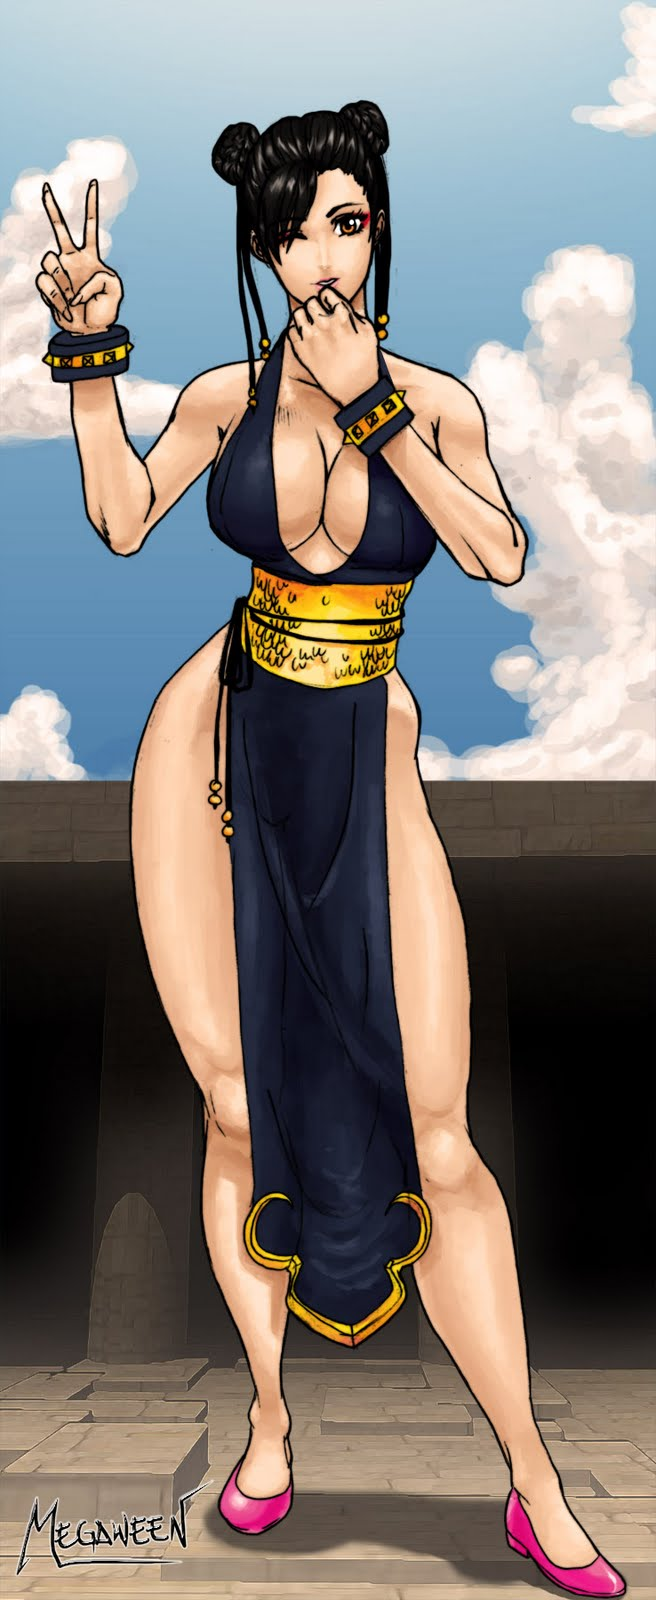 World anime pic & hot chun li  erotica girl